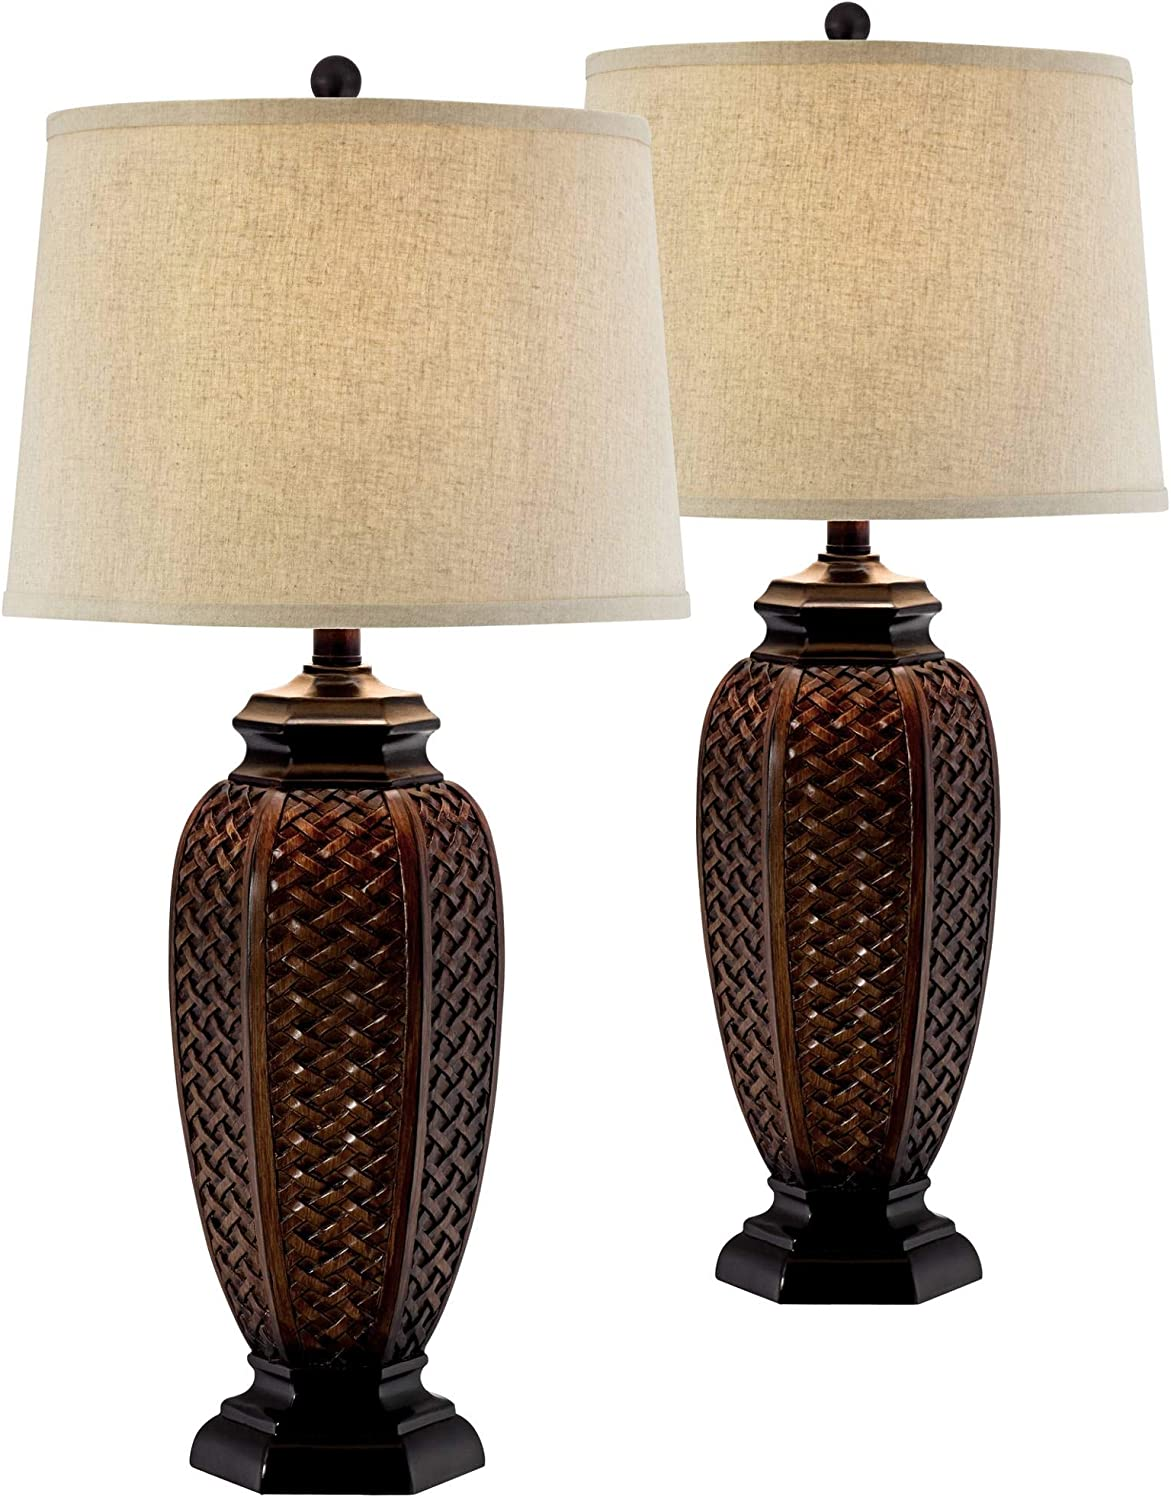 Tropical Jar Style Table Lamps Set of 12 Weathered Brown Woven Wicker Beige  Linen Fabric Drum Shade Decor for Living Room Bedroom House Bedside ...